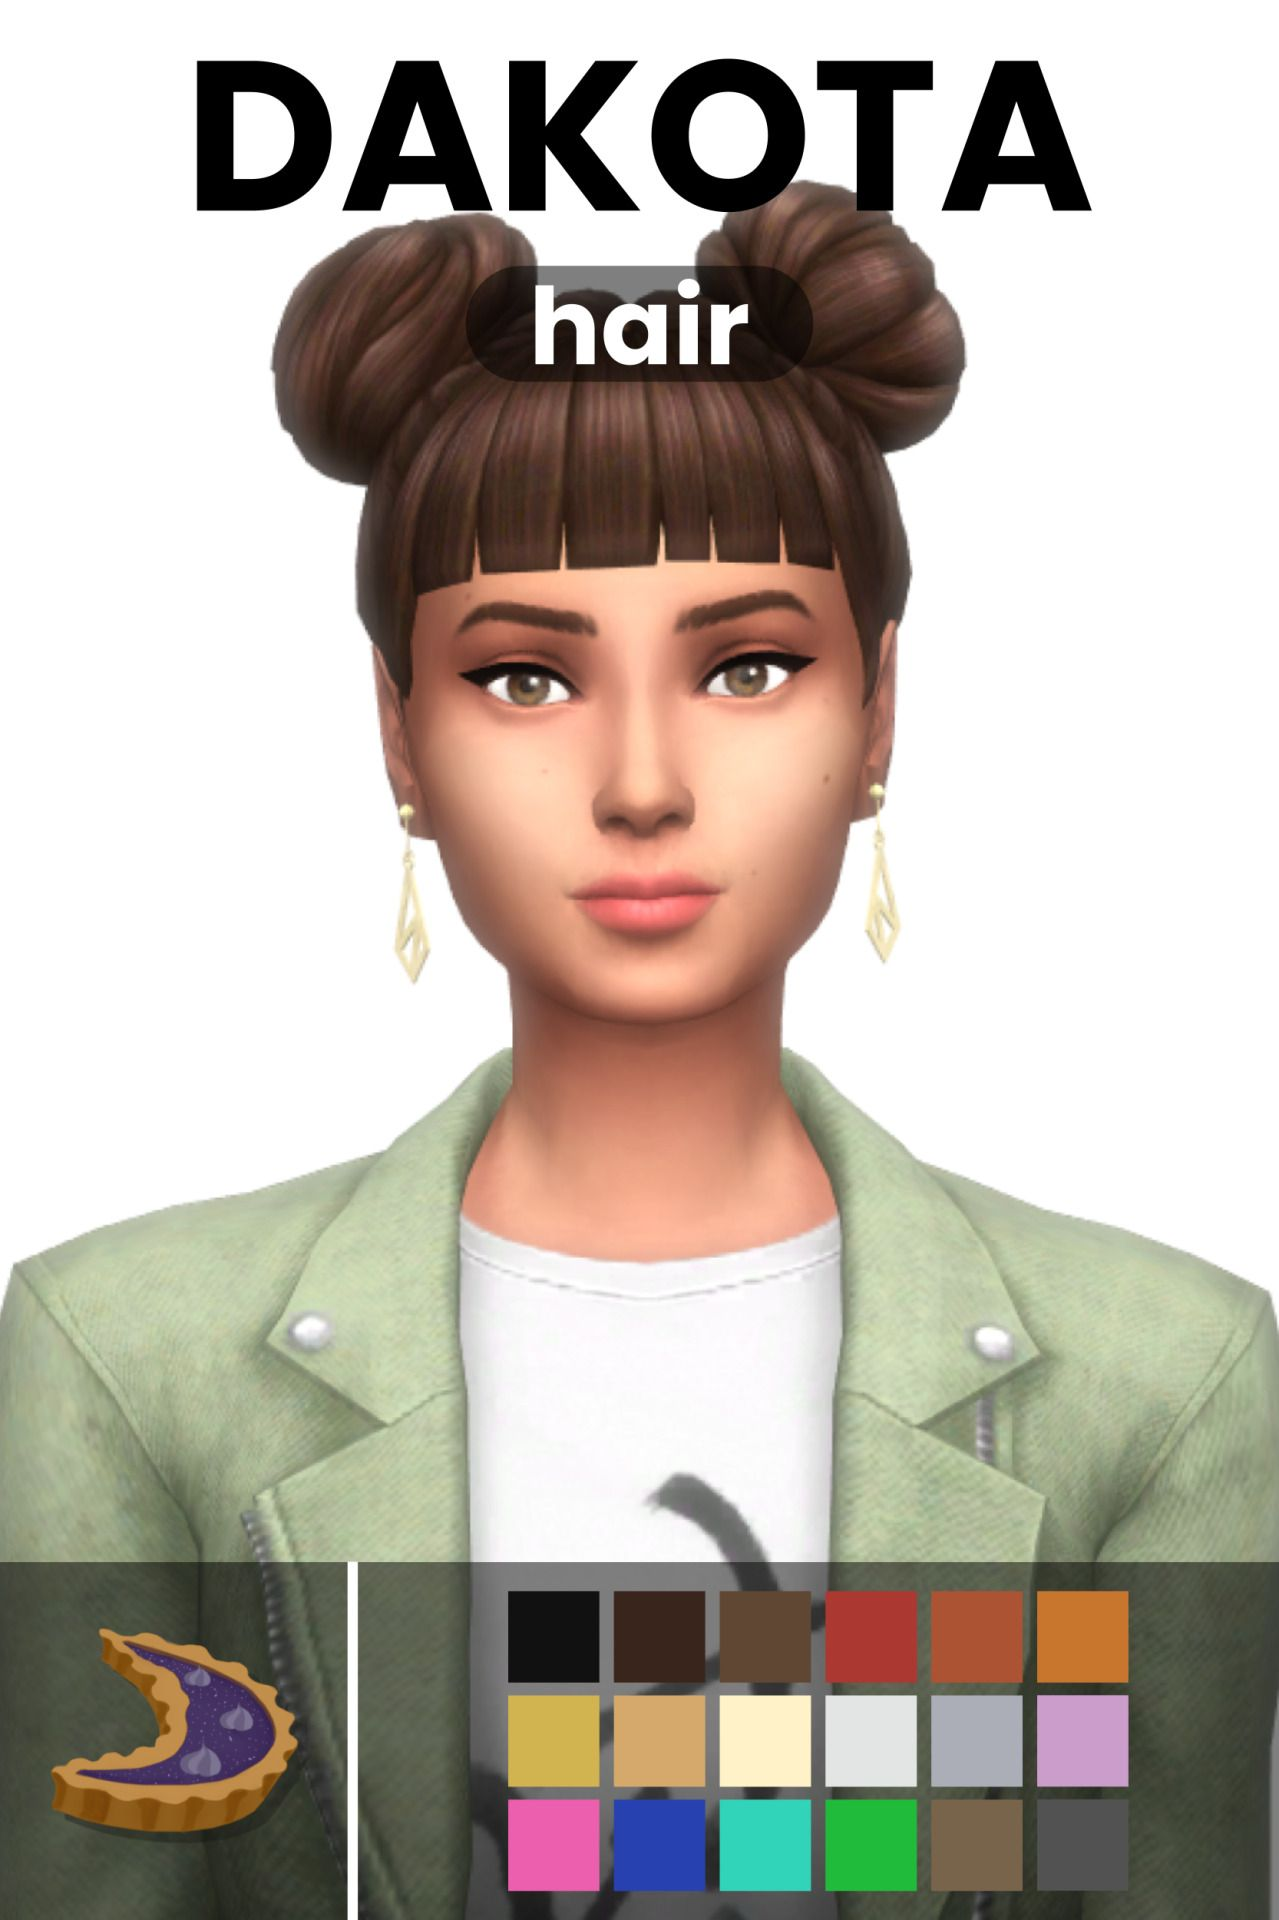 Dakota Hair By Moontaart In 2020 Sims Hair Sims 4 Characters Maxis Match